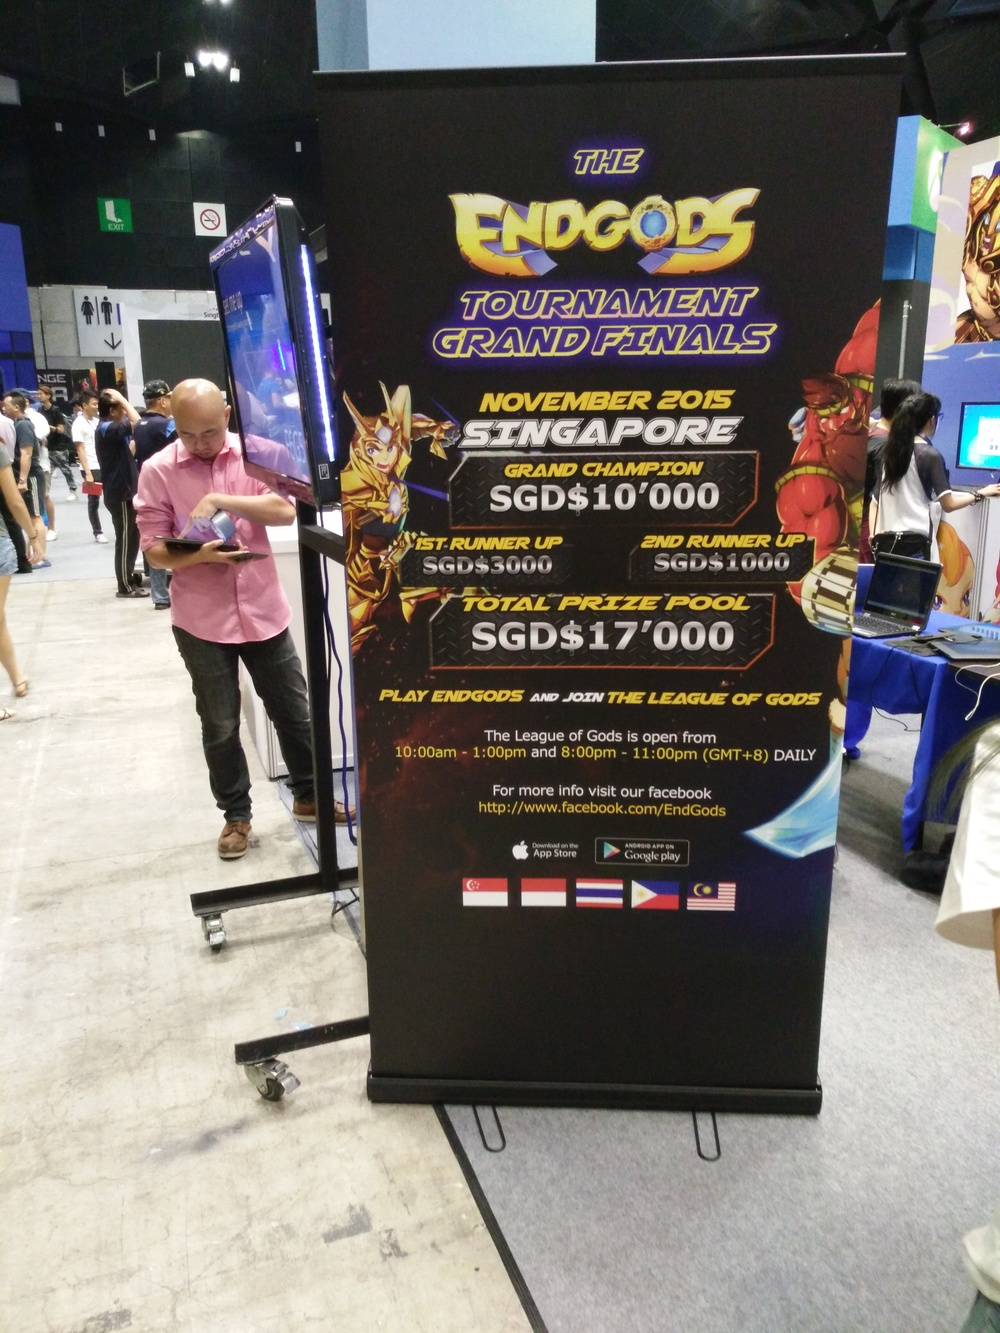 Win up to $1000 in cash at the ENDGODS tournament at GAMEX and take part in their Grand Tournament in November to stand a shot at winning $10,000!